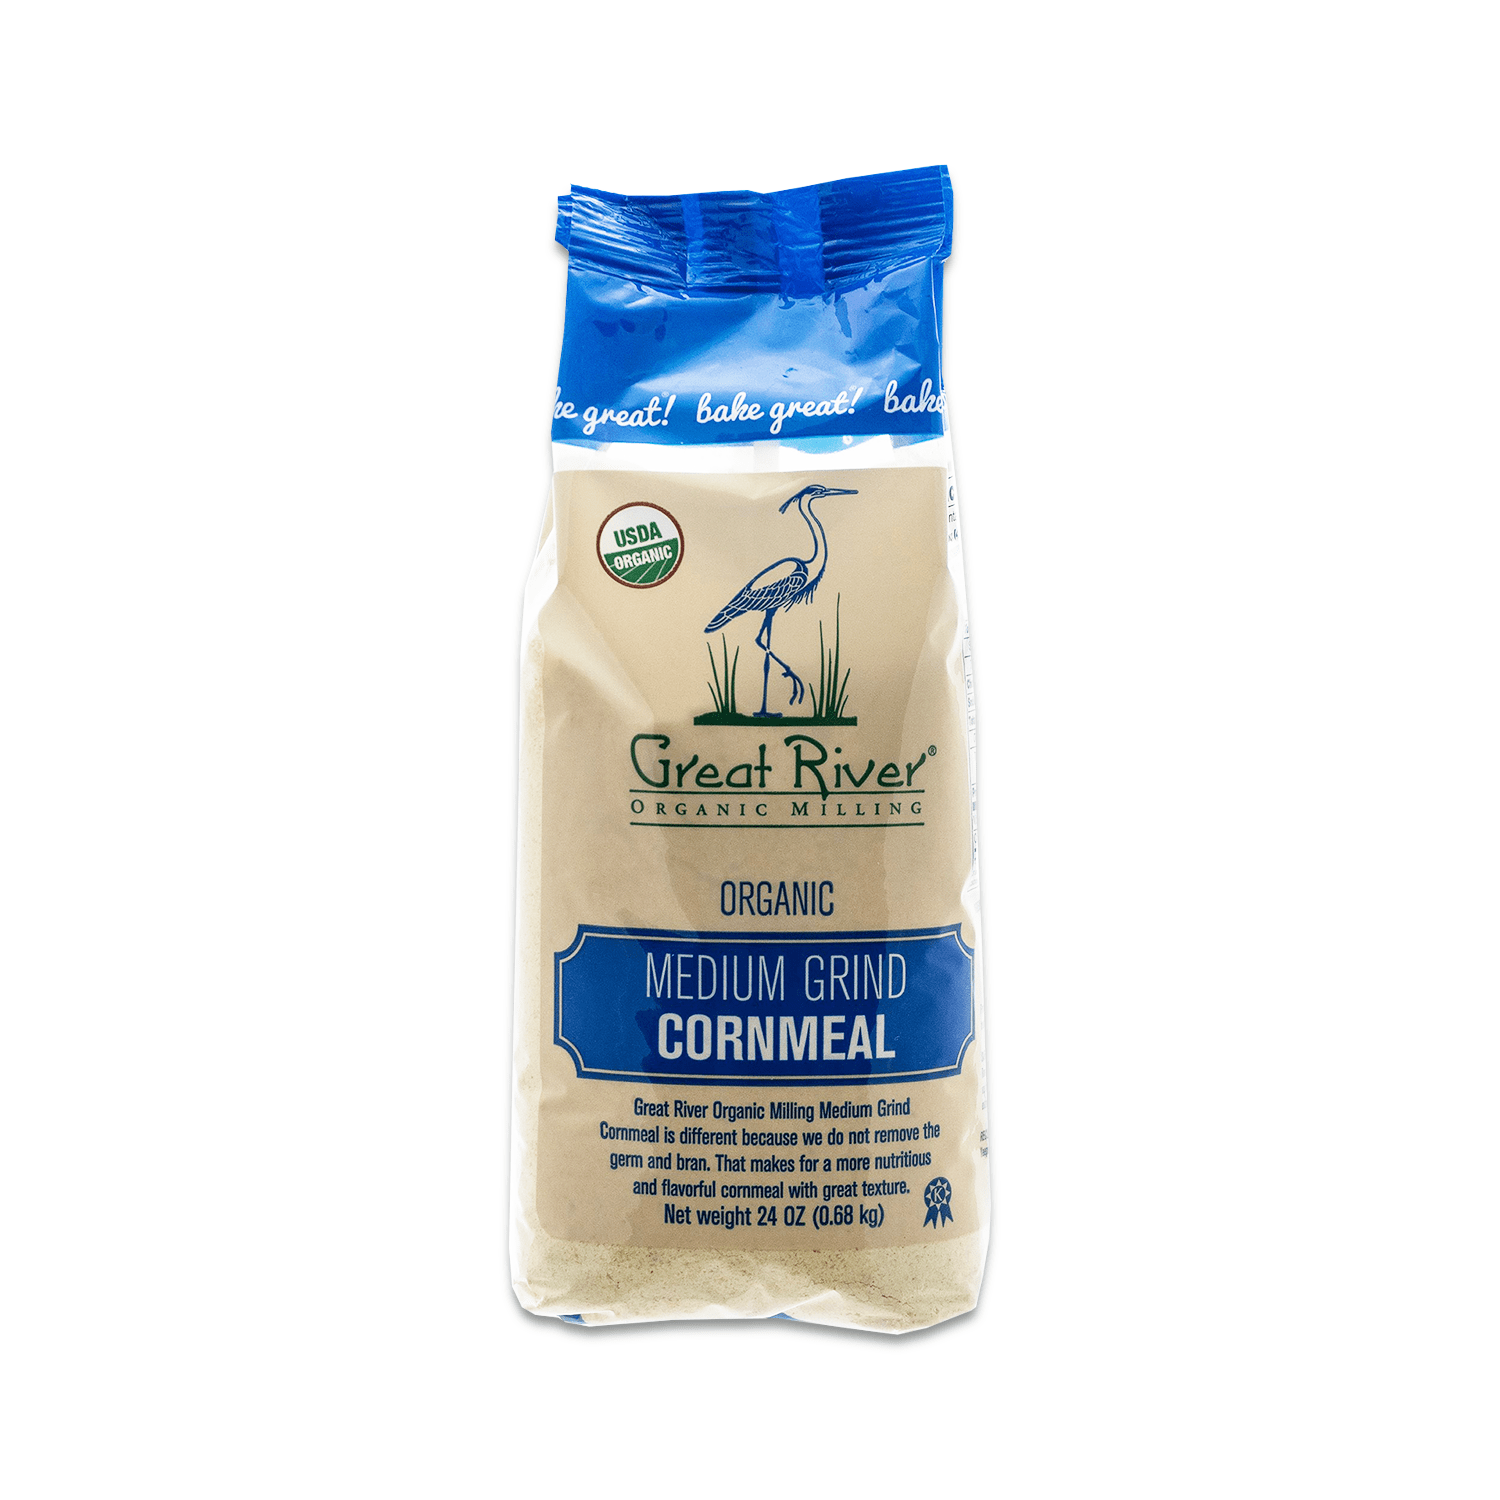 Great River Organic Milling Medium Grind Cornmeal